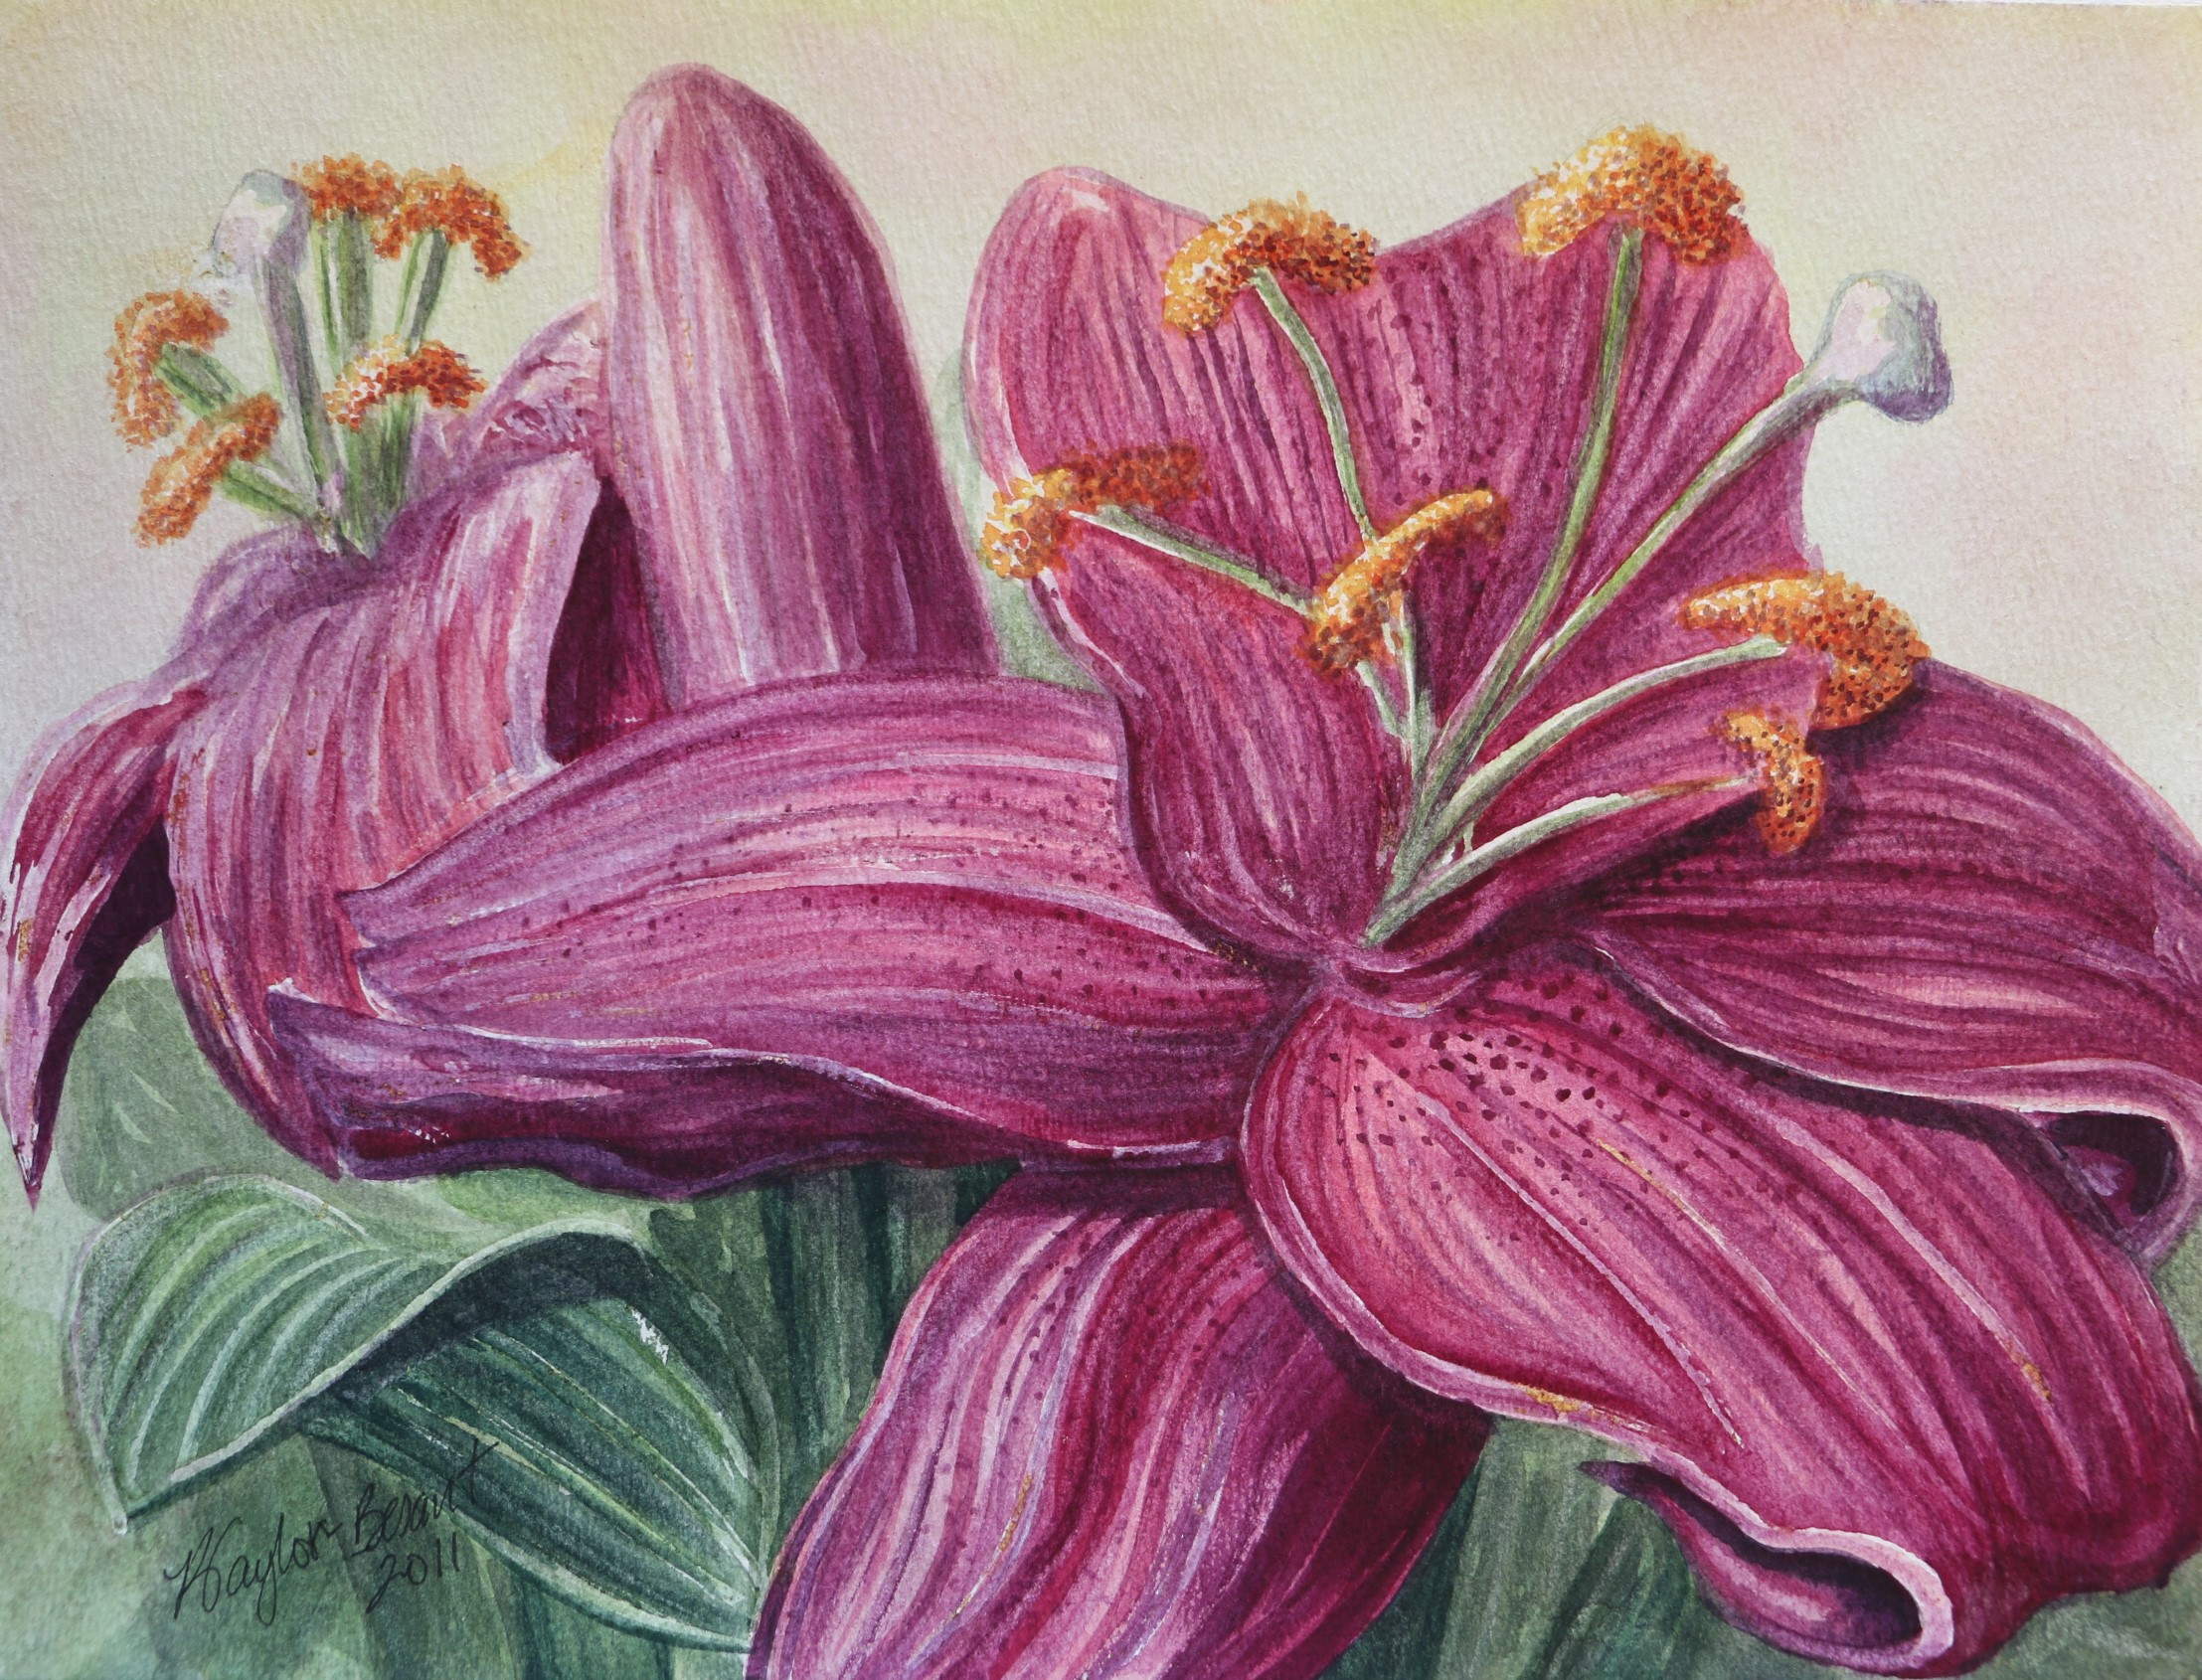 Red Violet Lilies Study